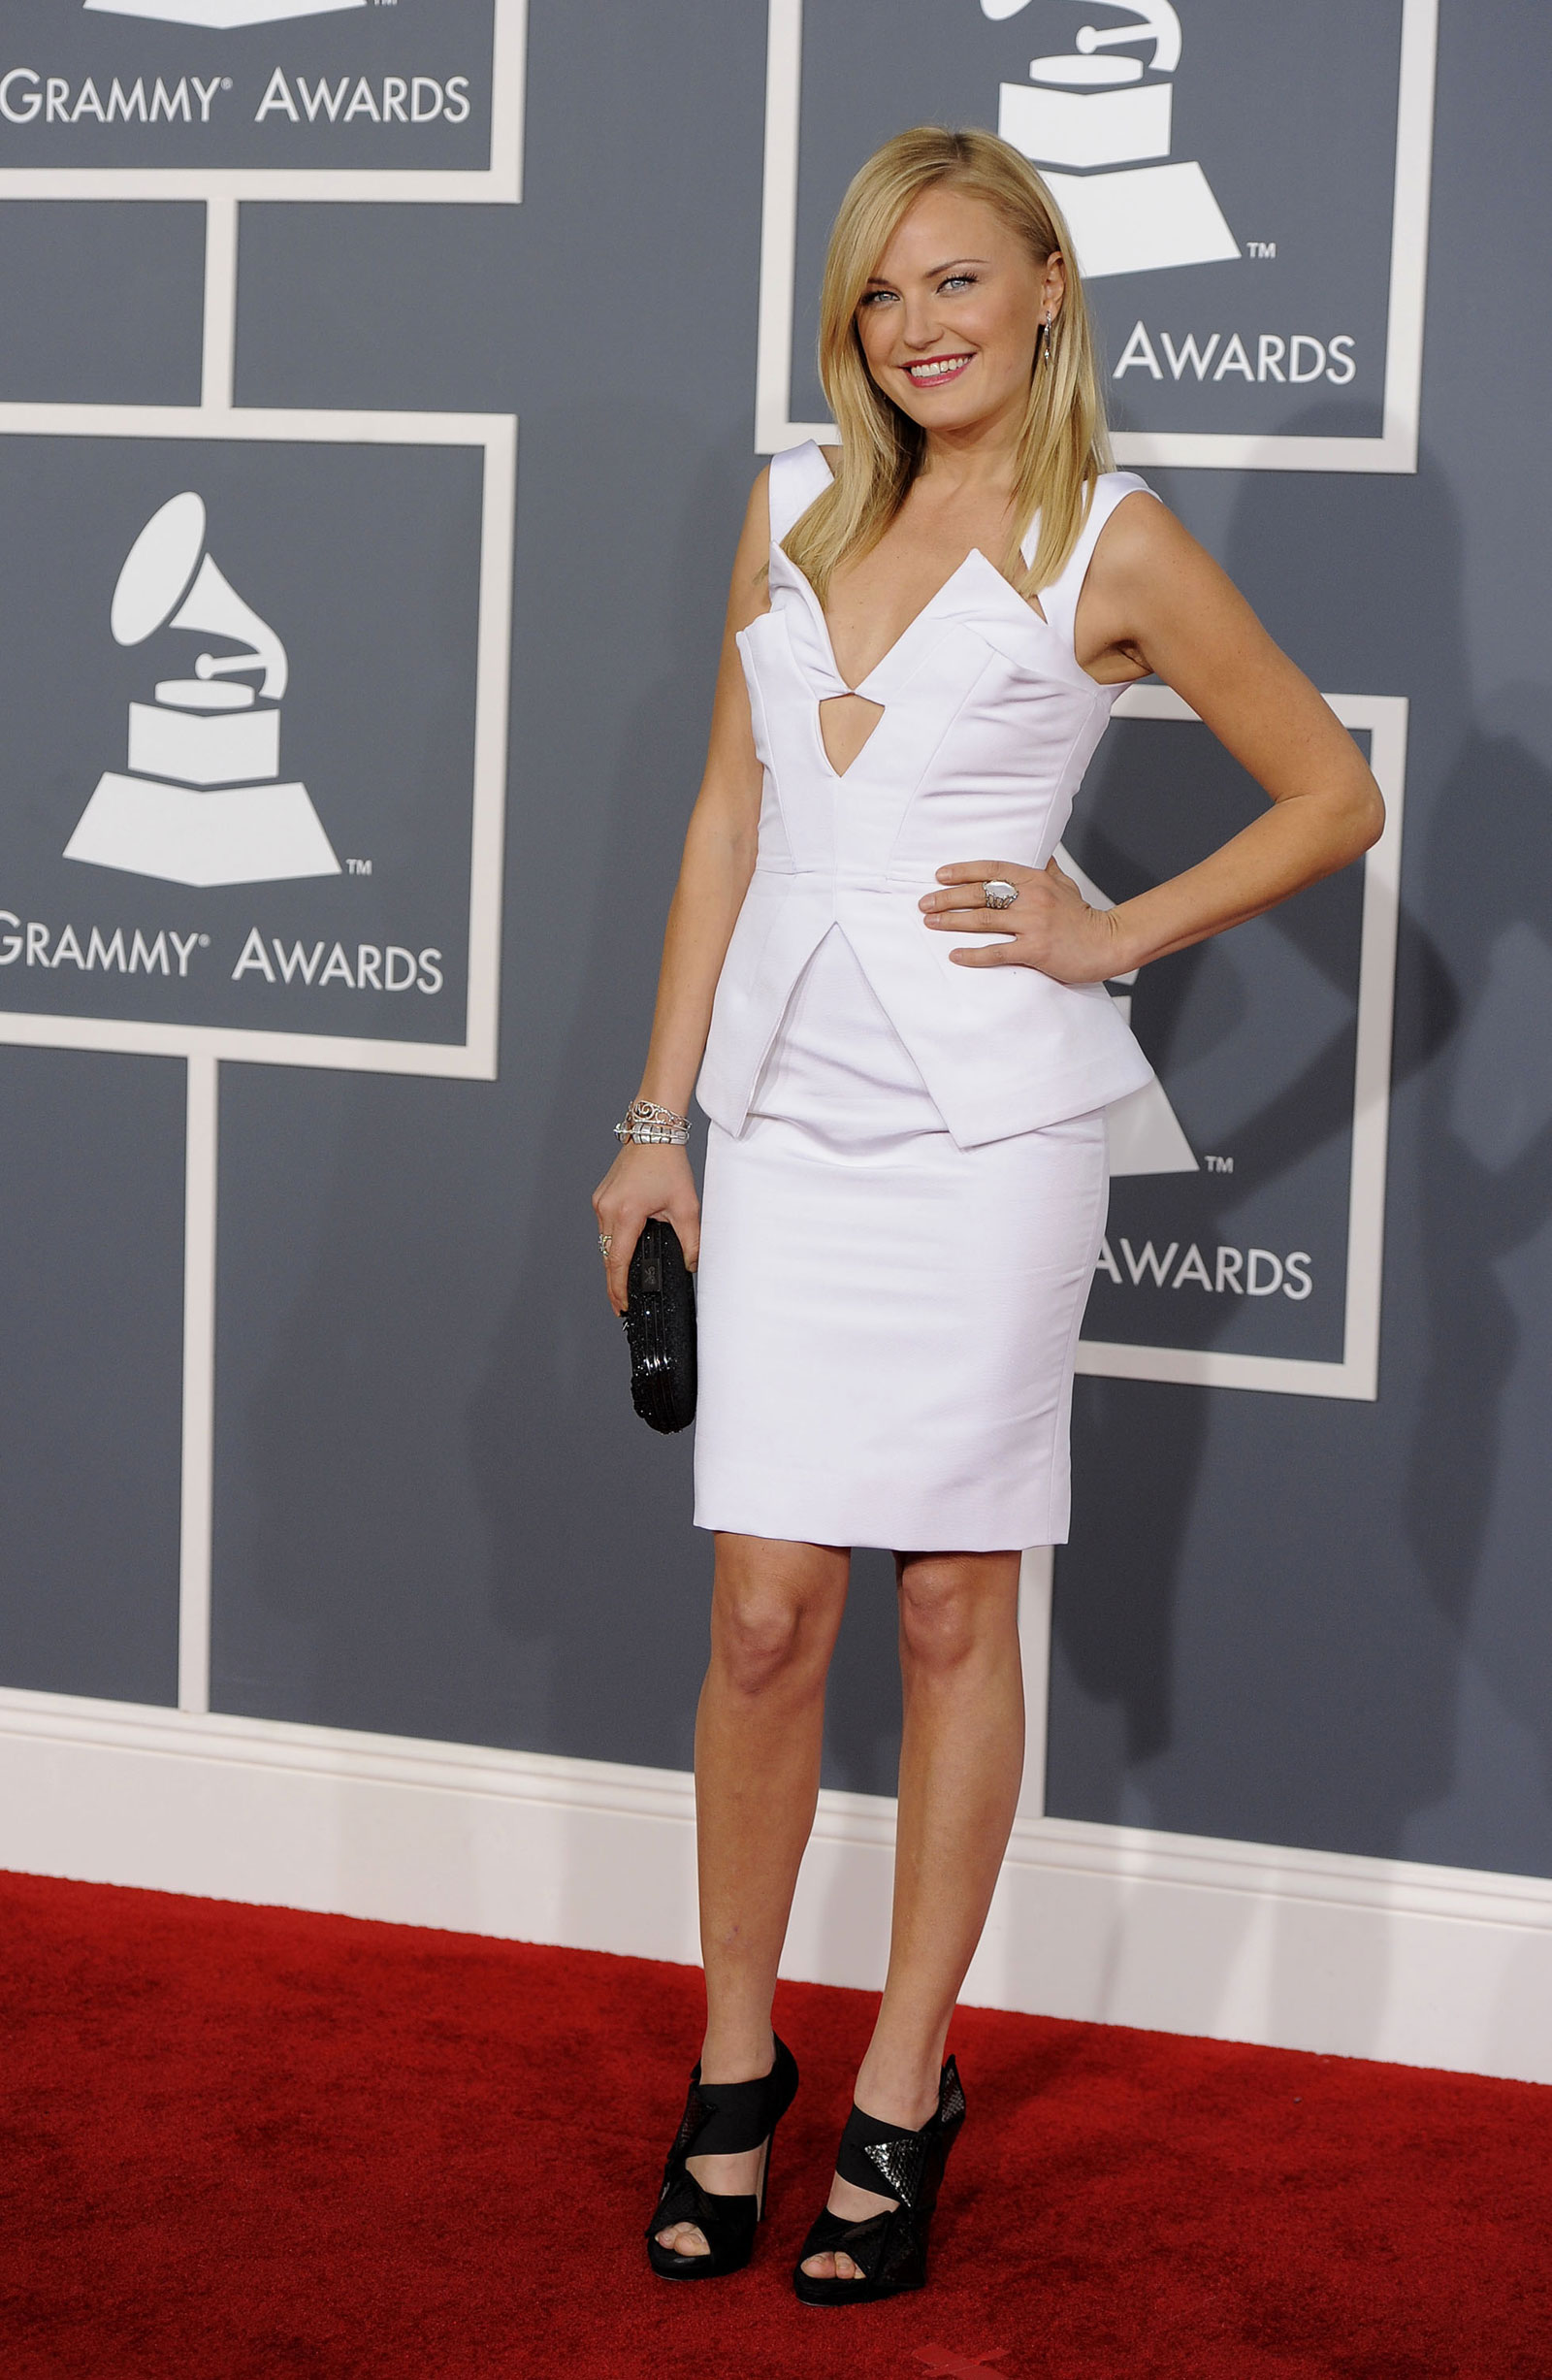 Carrie Underwood at 54th Annual Grammy Awards in Los Angeles